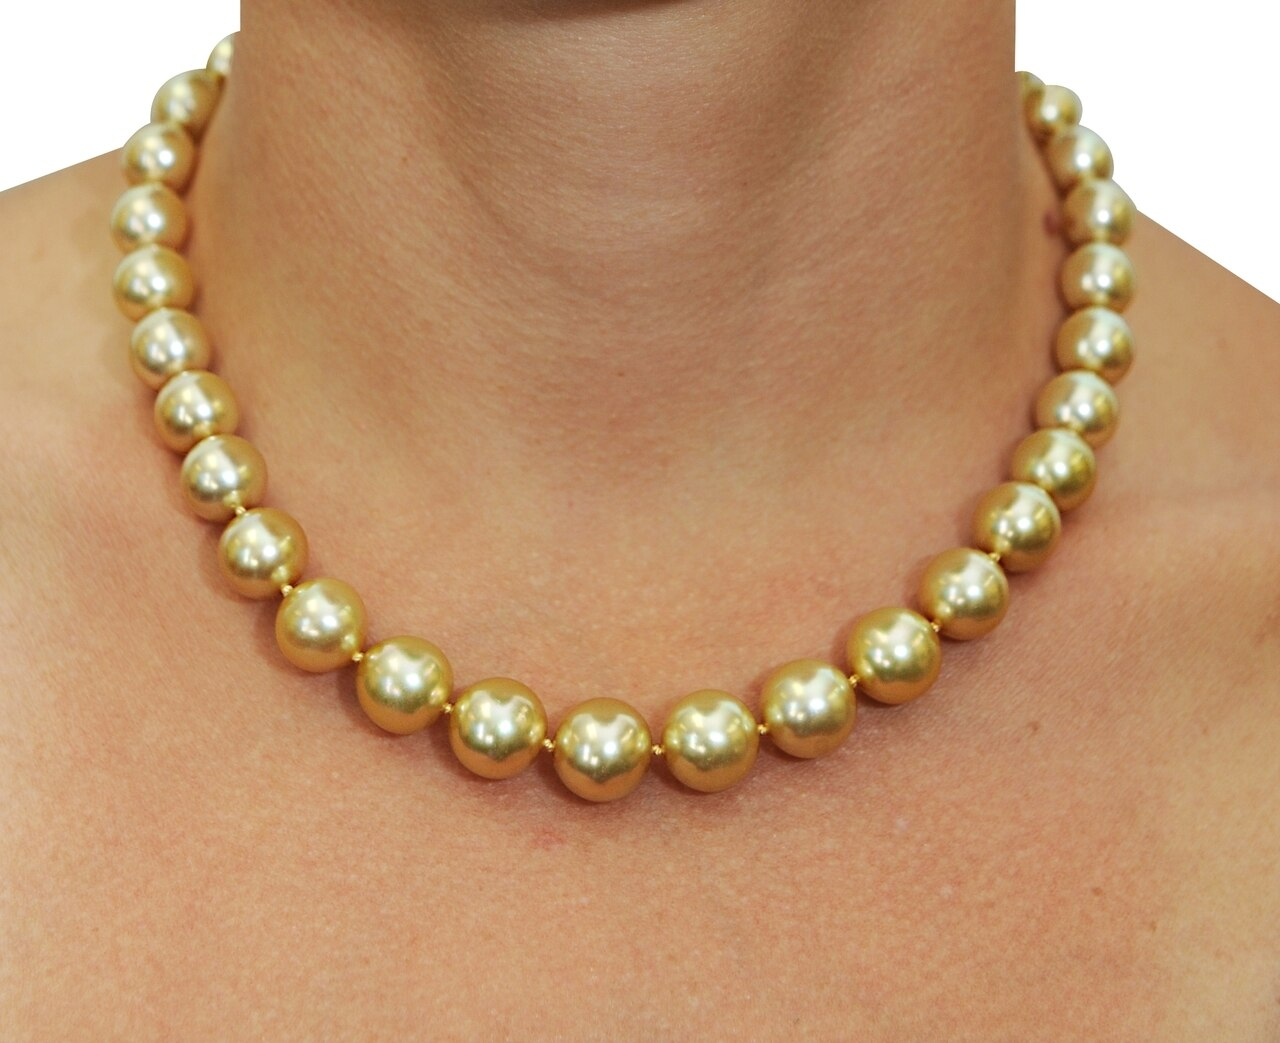 This elegant necklace features 12.0-14.0mm Gold South Sea pearls, handpicked for their luminous luster